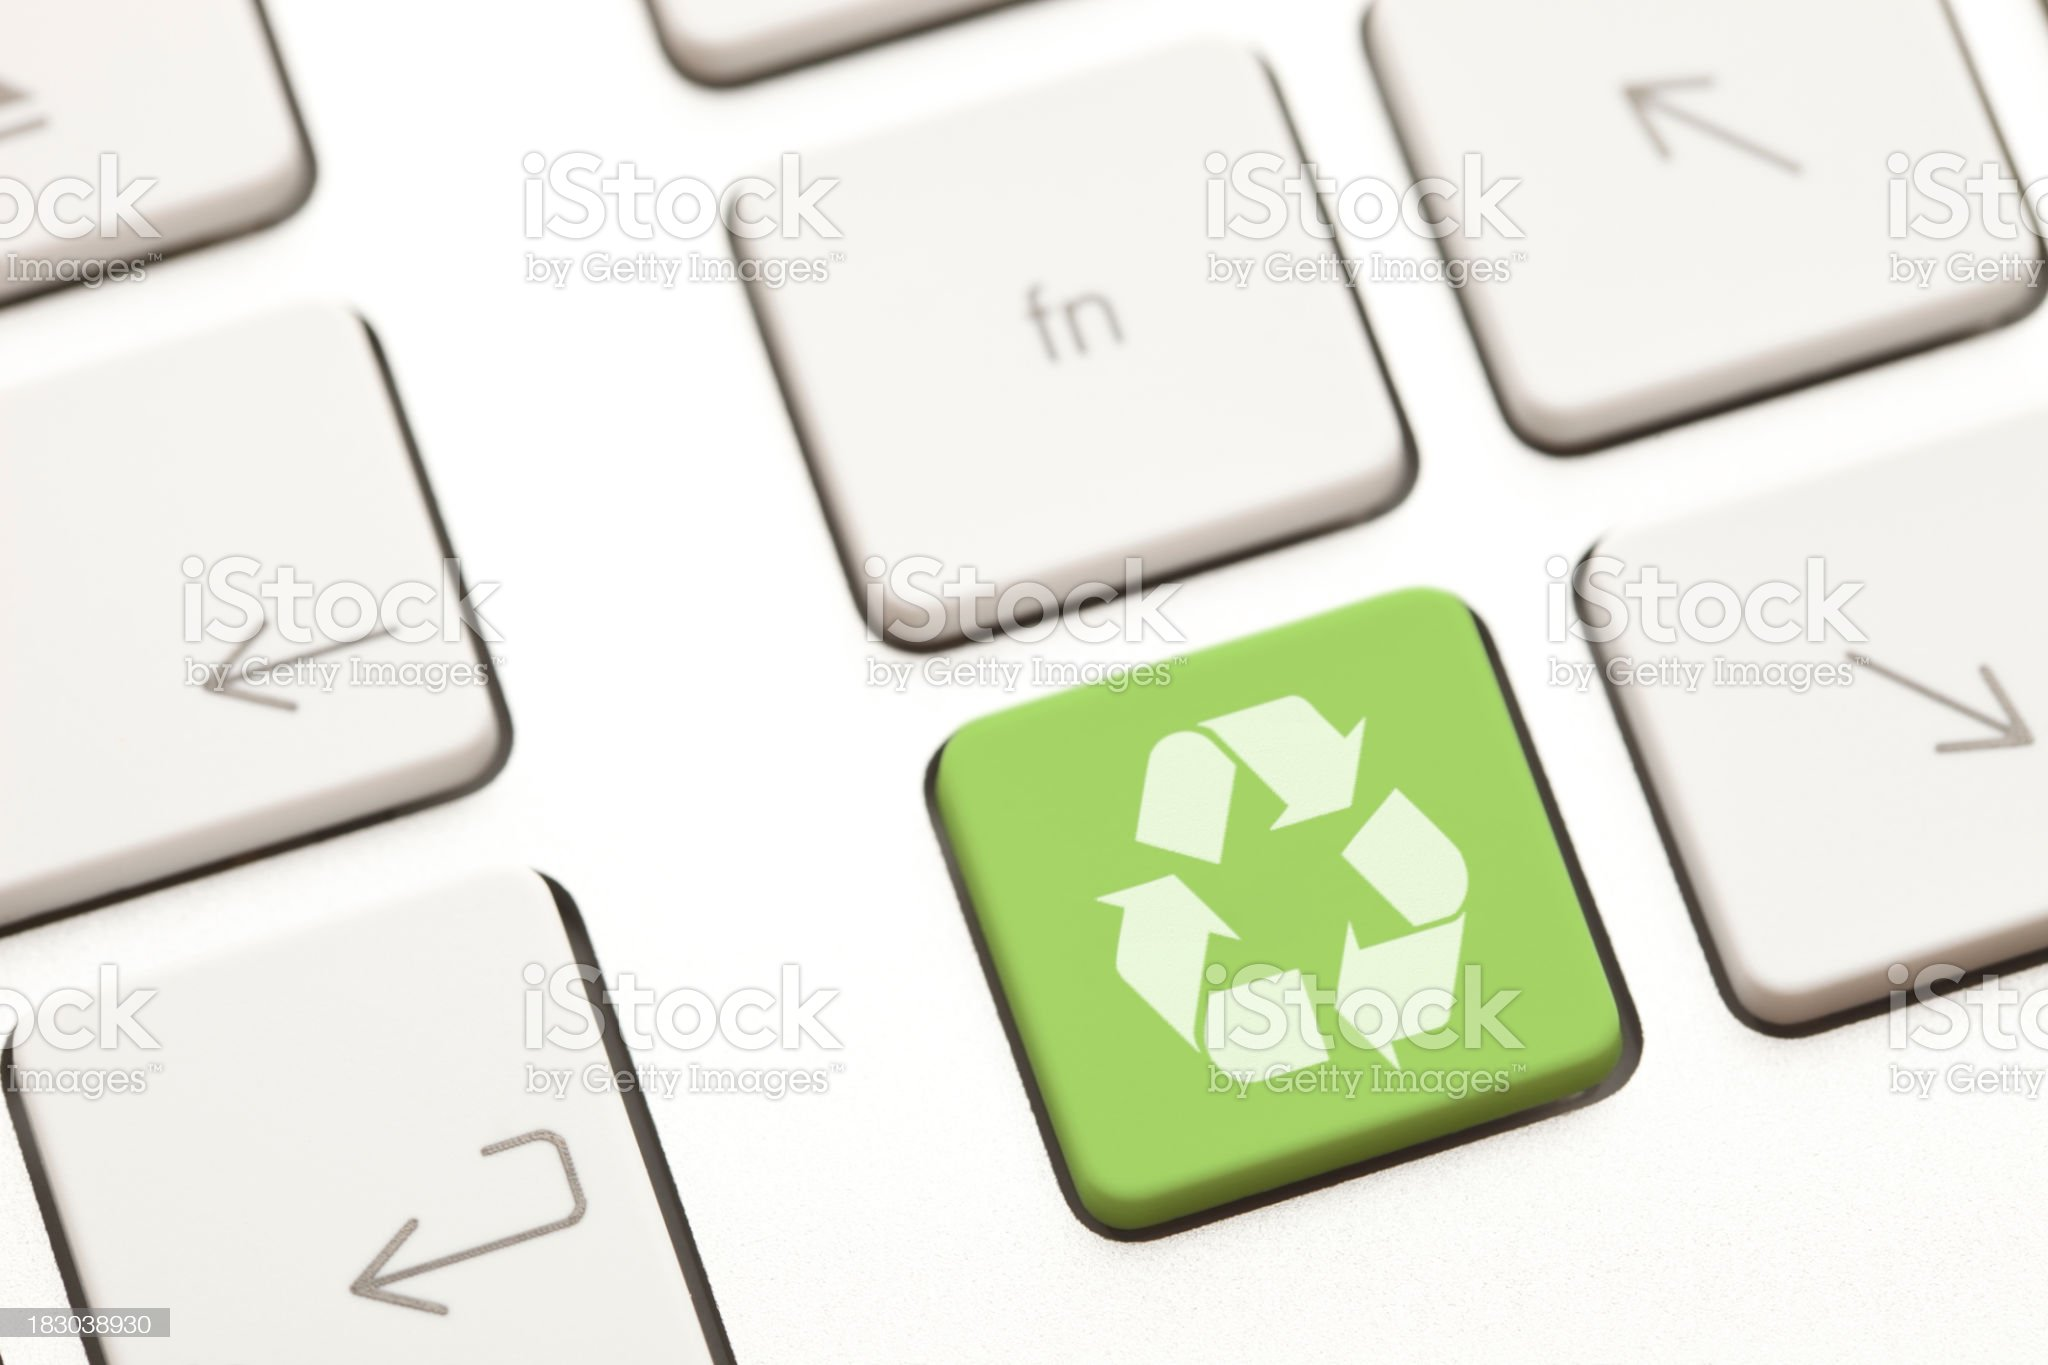 Recycle computer key royalty-free stock photo